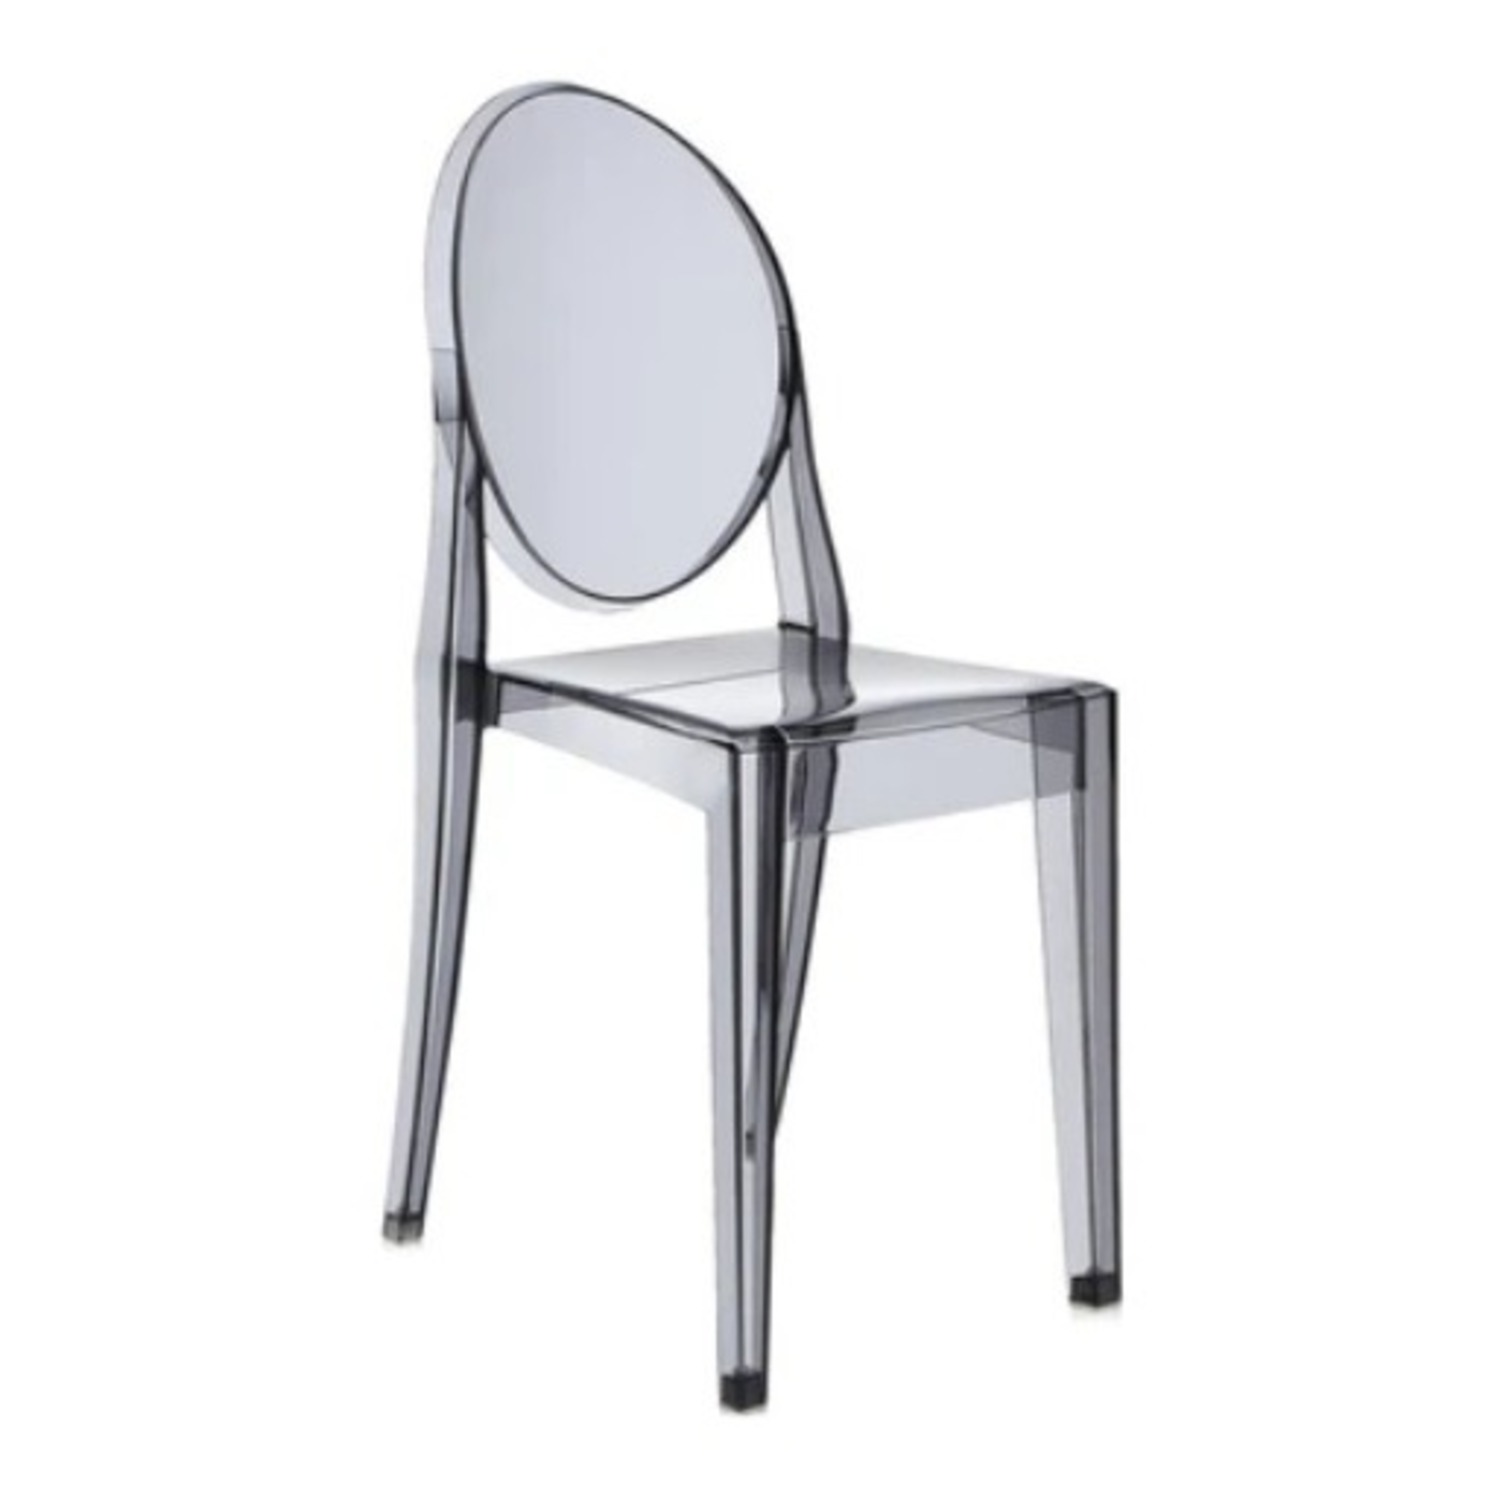 Kartell Victoria Ghost Chair in Smoke Grey - image-1